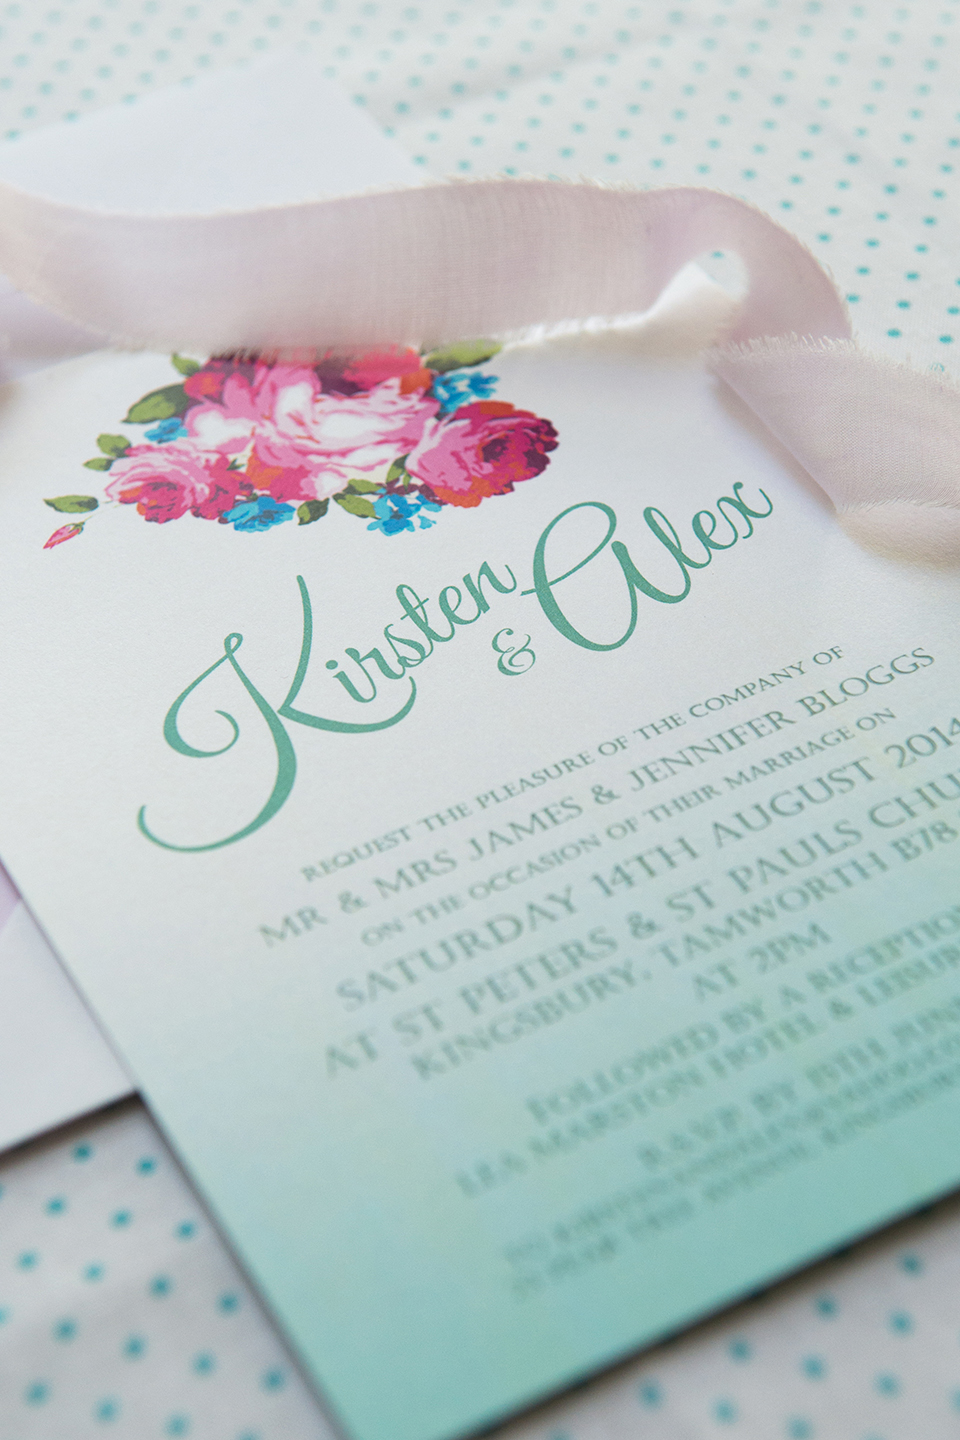 Win Wedding Stationery Worth £500 From The Wonderful Knots & Kisses